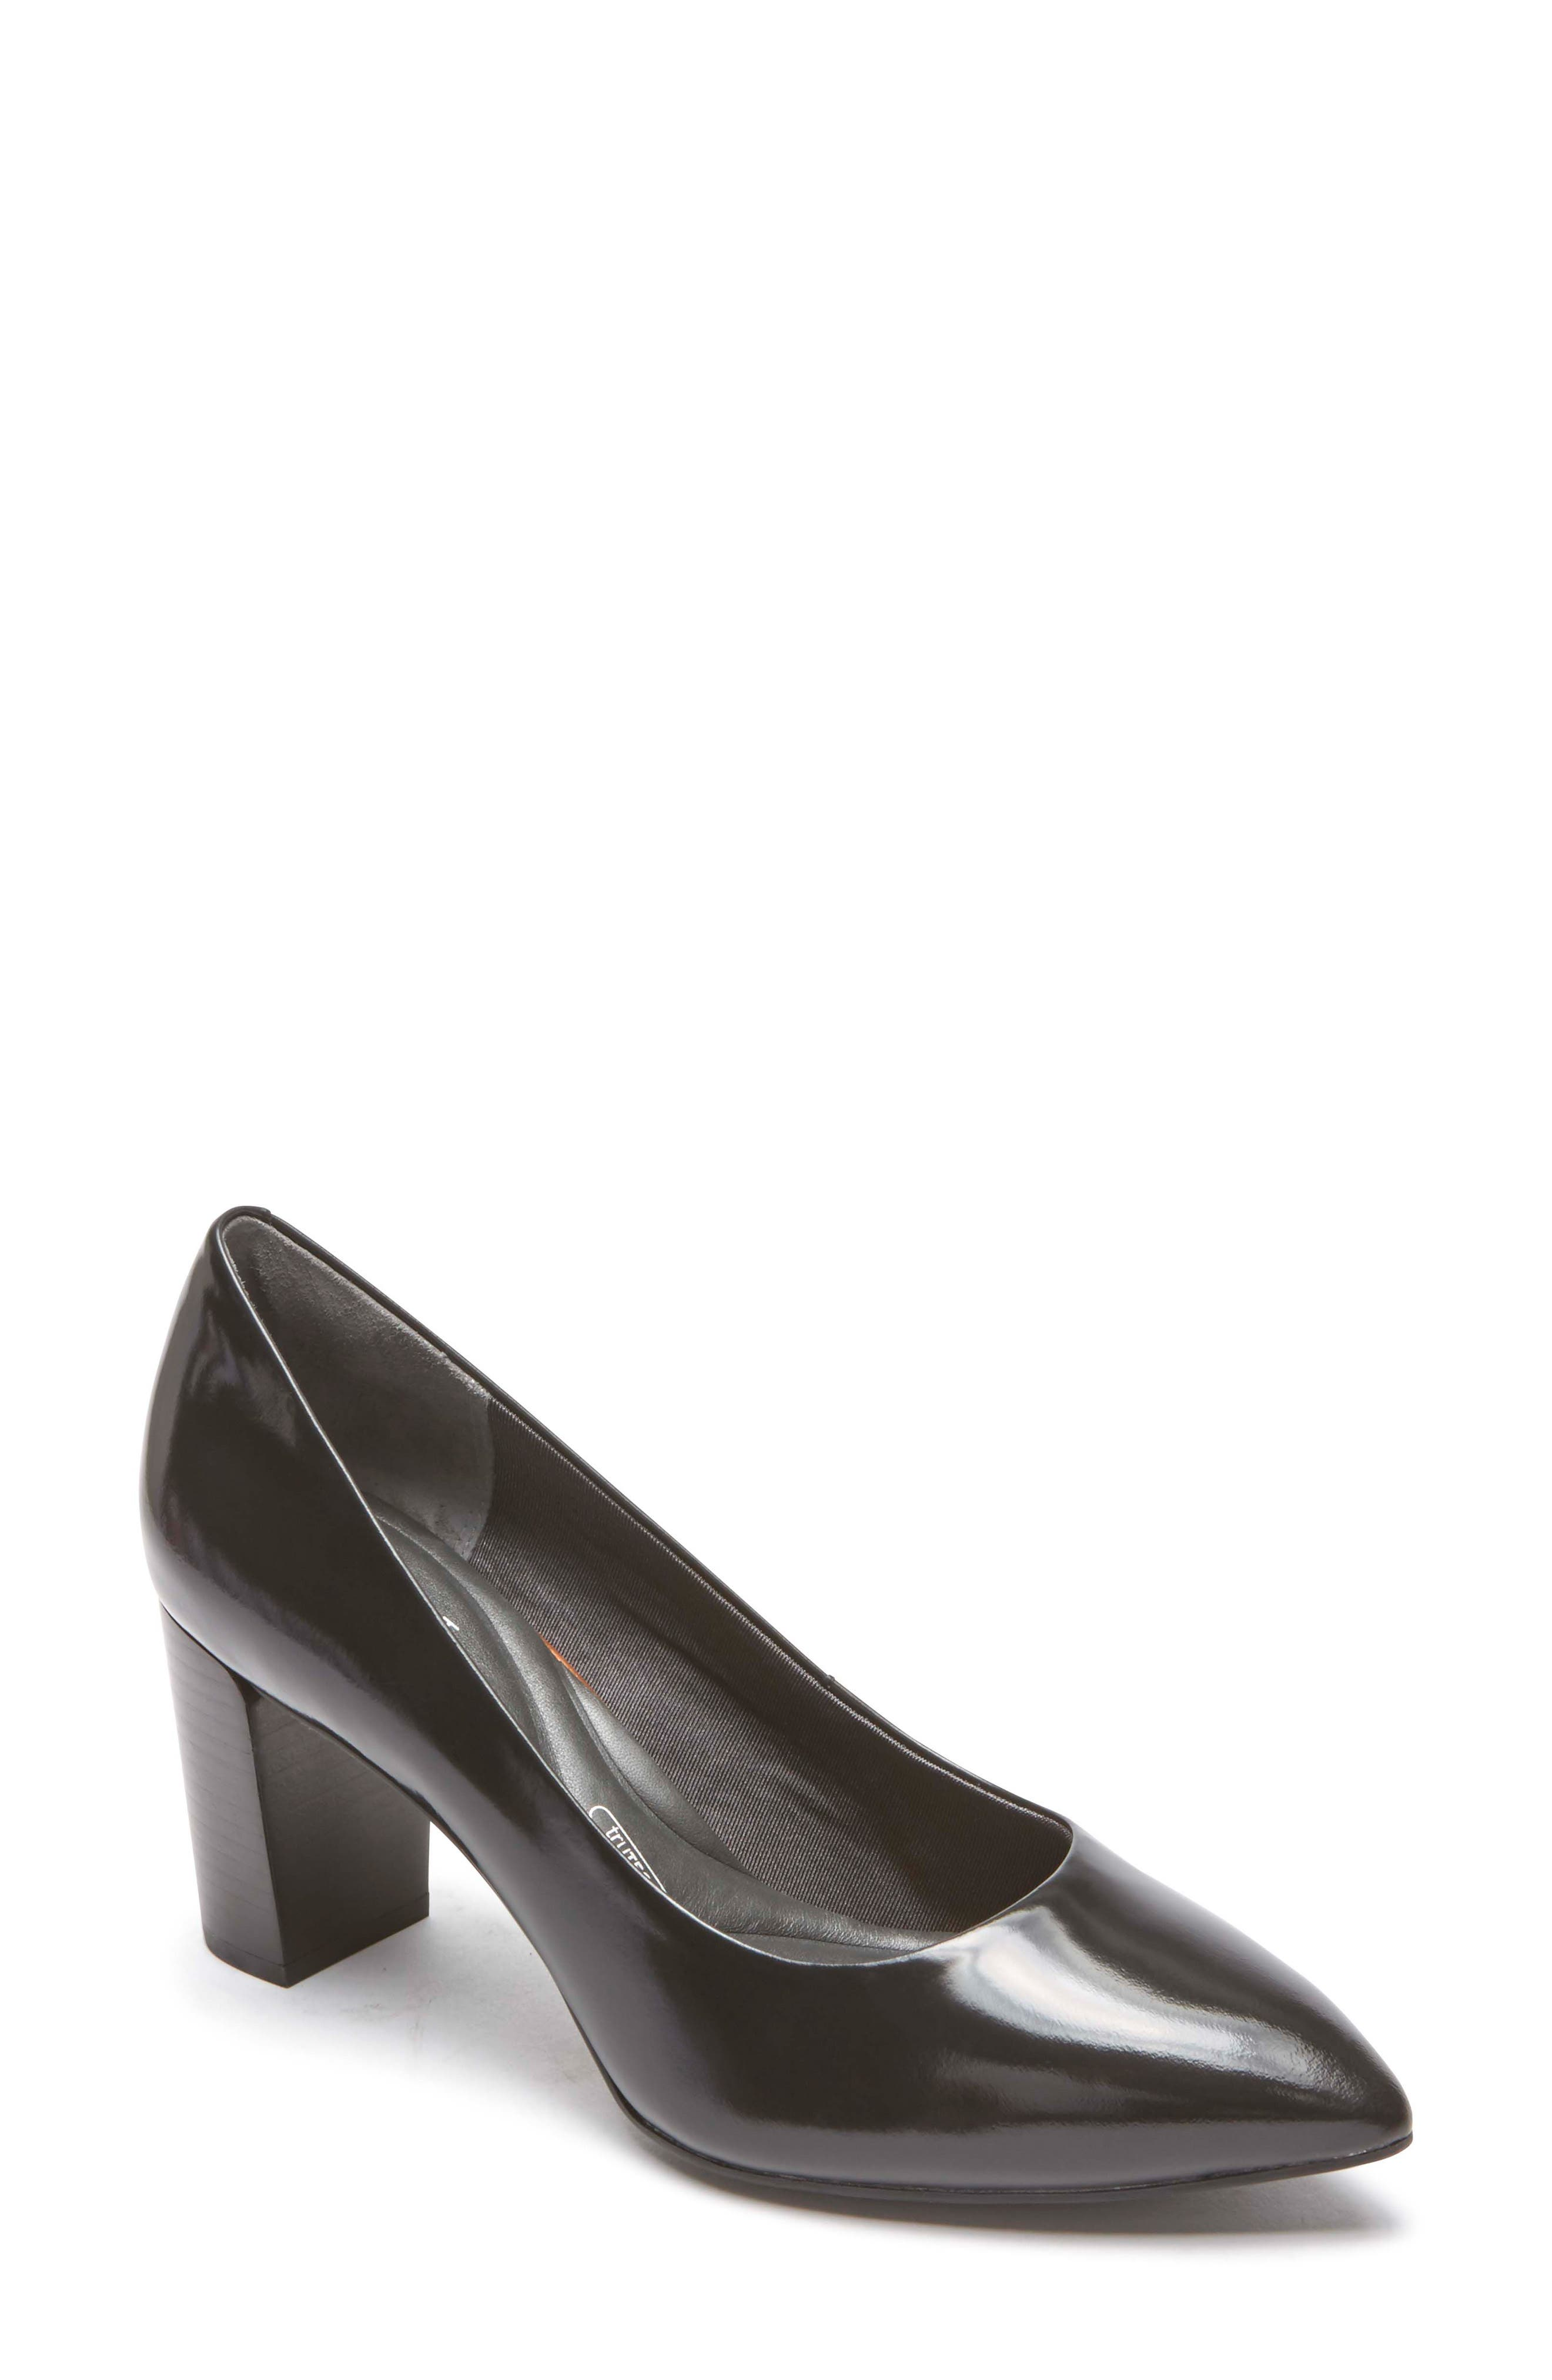 Total Motion Violina Luxe Pointy Toe Pump,                         Main,                         color, BLACK PATENT LEATHER